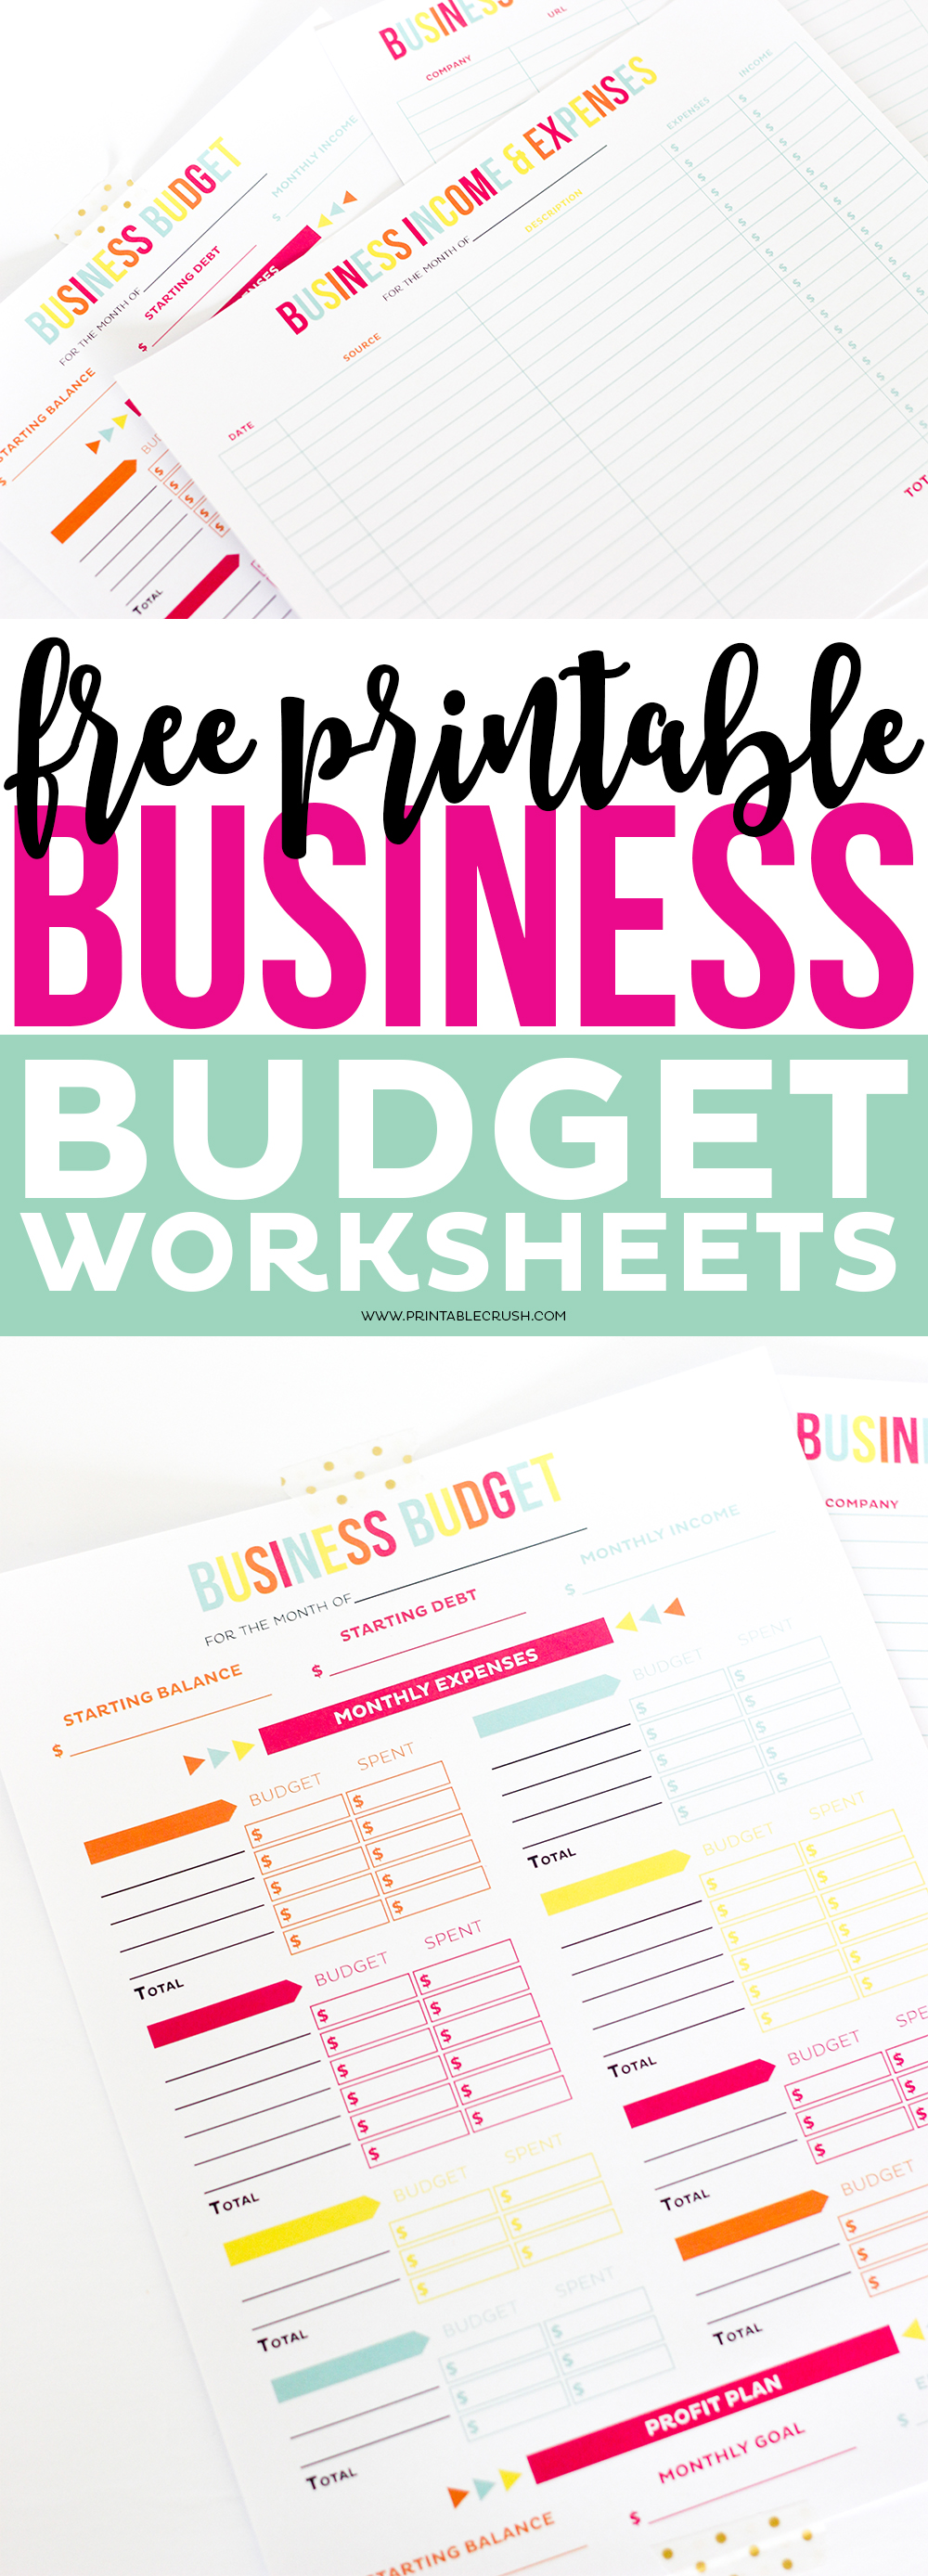 free printable business budget worksheets printable crush